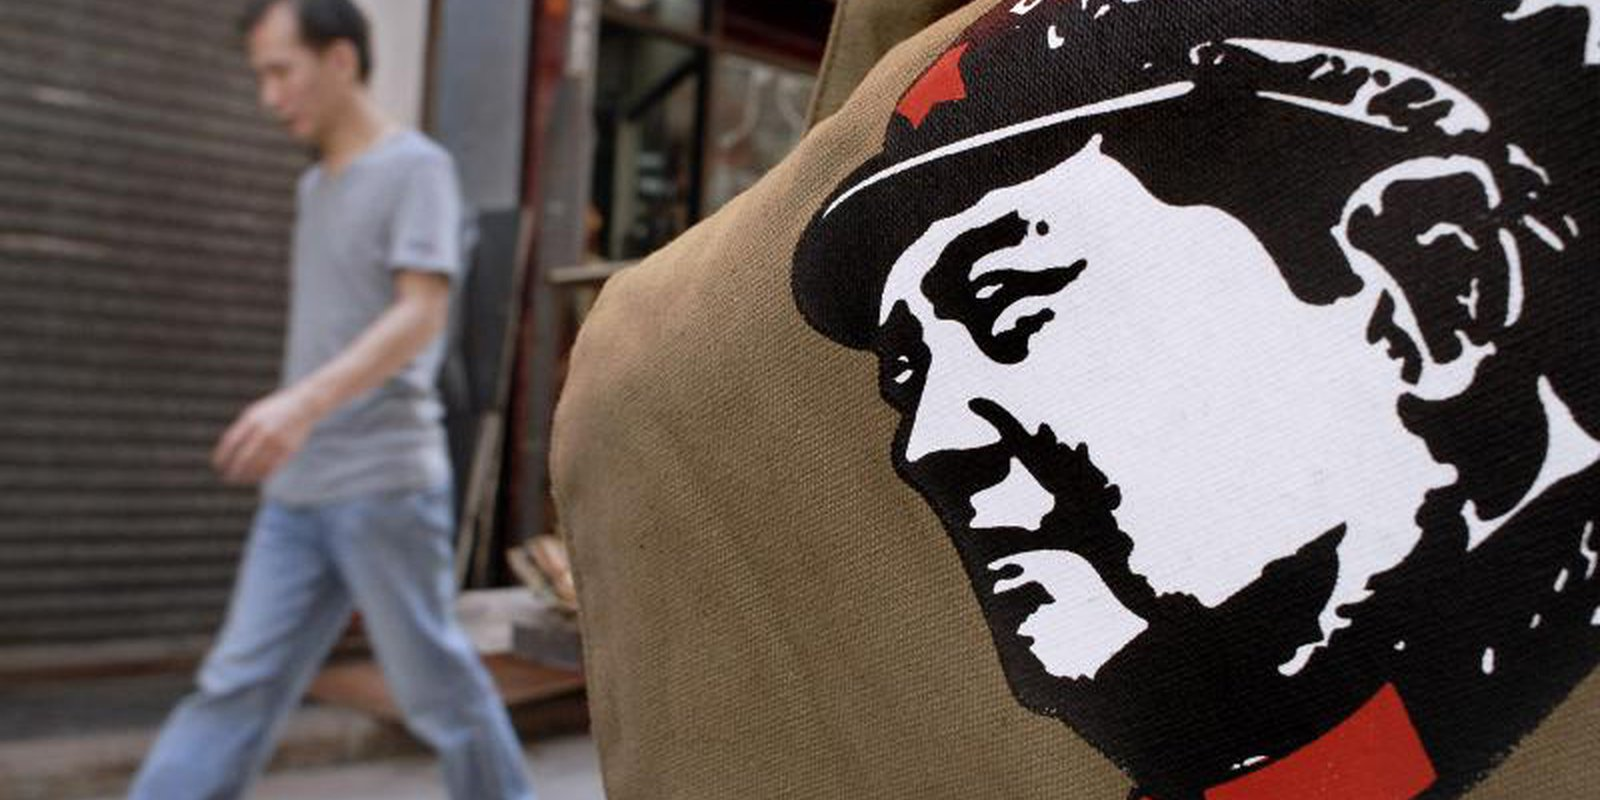 A man walks past a bag printed with the portrait of China's revolutionary leader Mao Tse-tung on display outside a shop in Hong Kong. Photo by PHILIPPE LOPEZ/AFP via Getty Images.